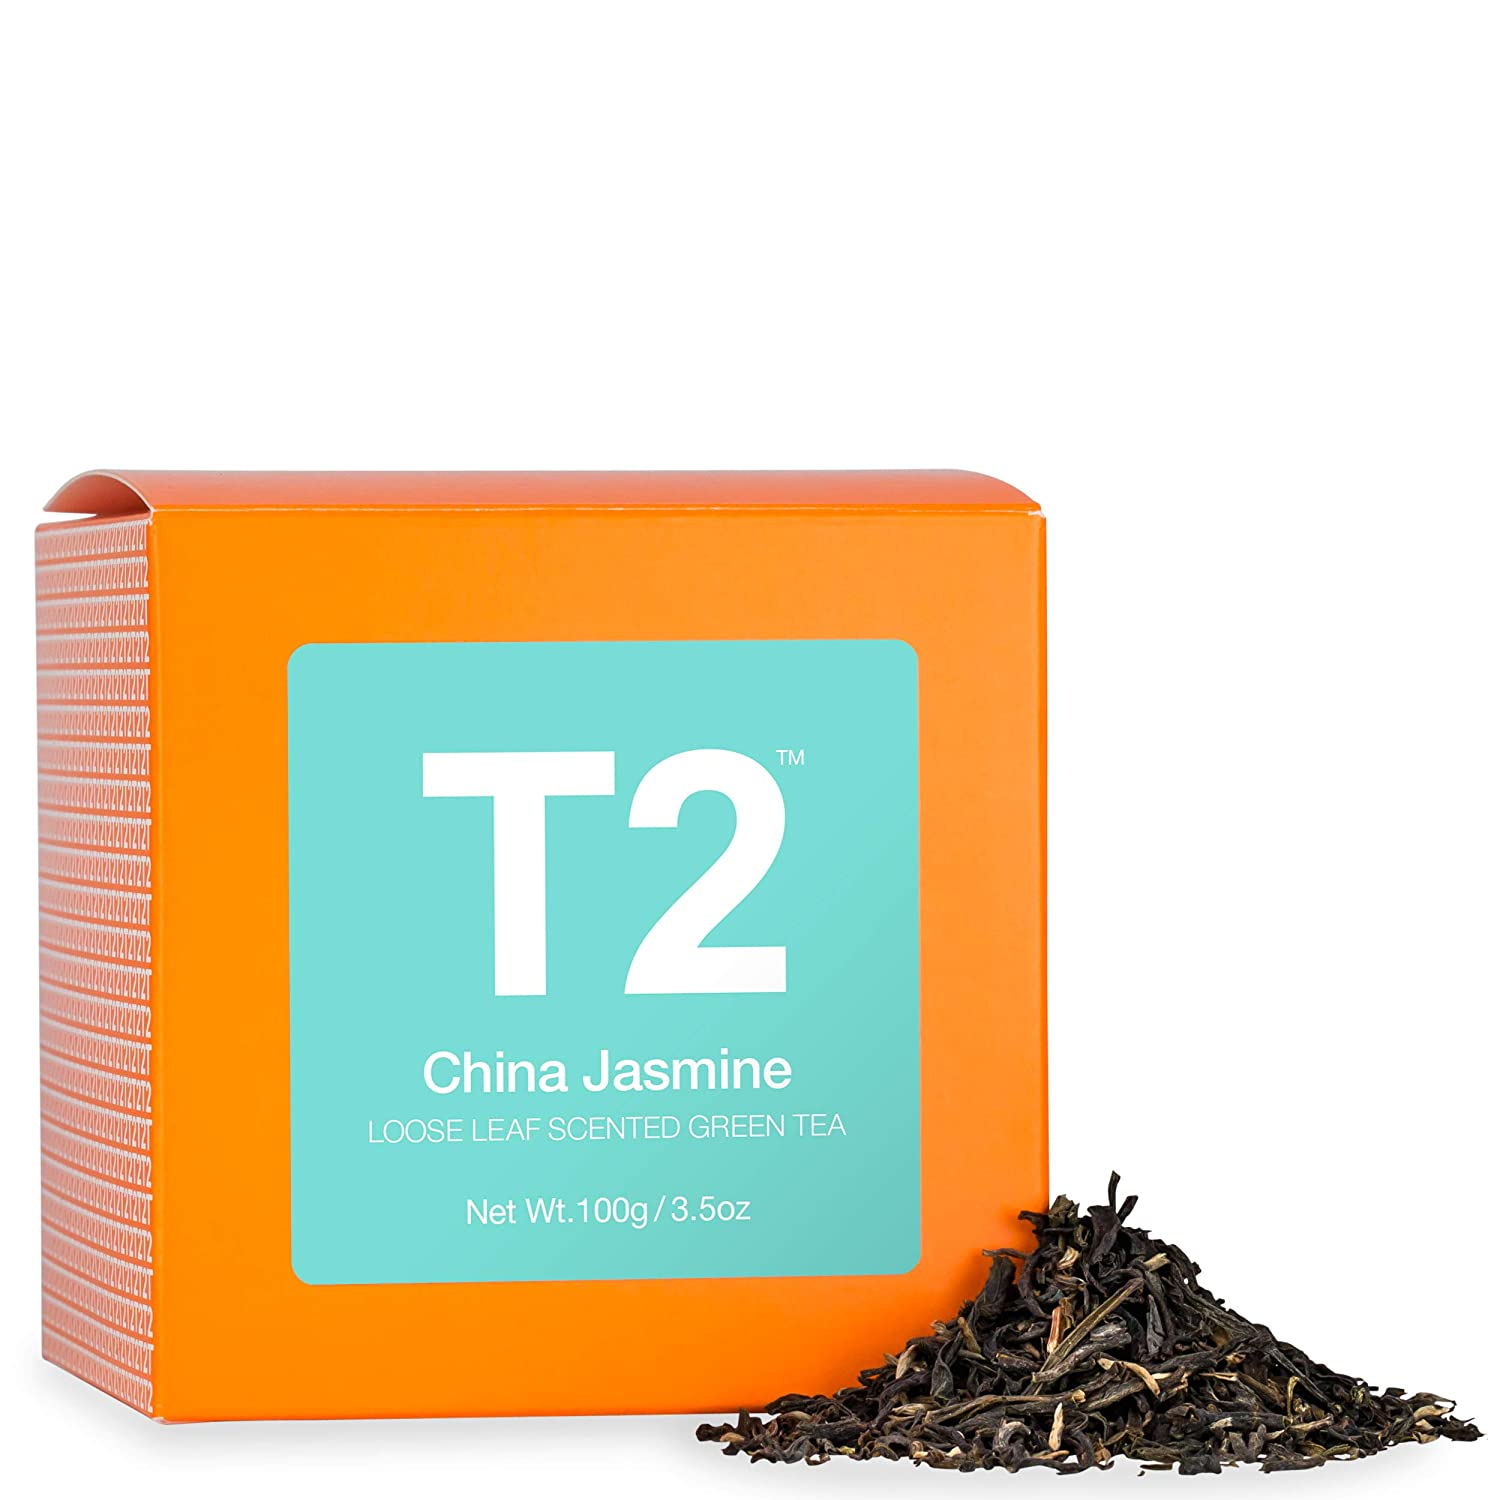 David's tea area one farms new in box 12 teas and infusions new sealed box